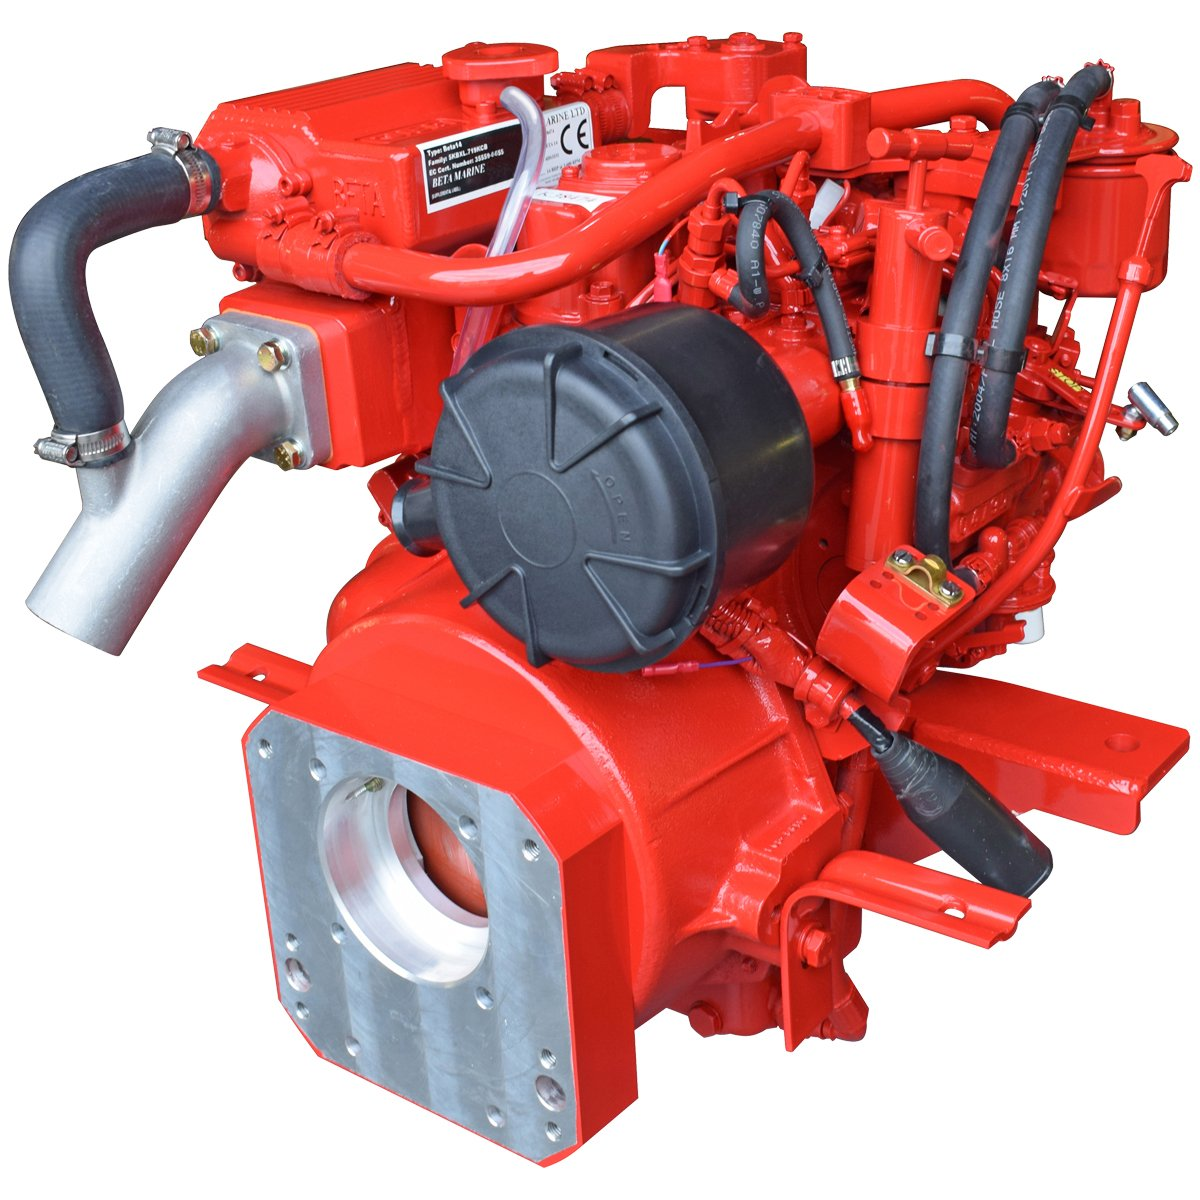 Beta Marine USA - marine diesel saildrive engines - Beta 14SD heat exchanger saildrive engine